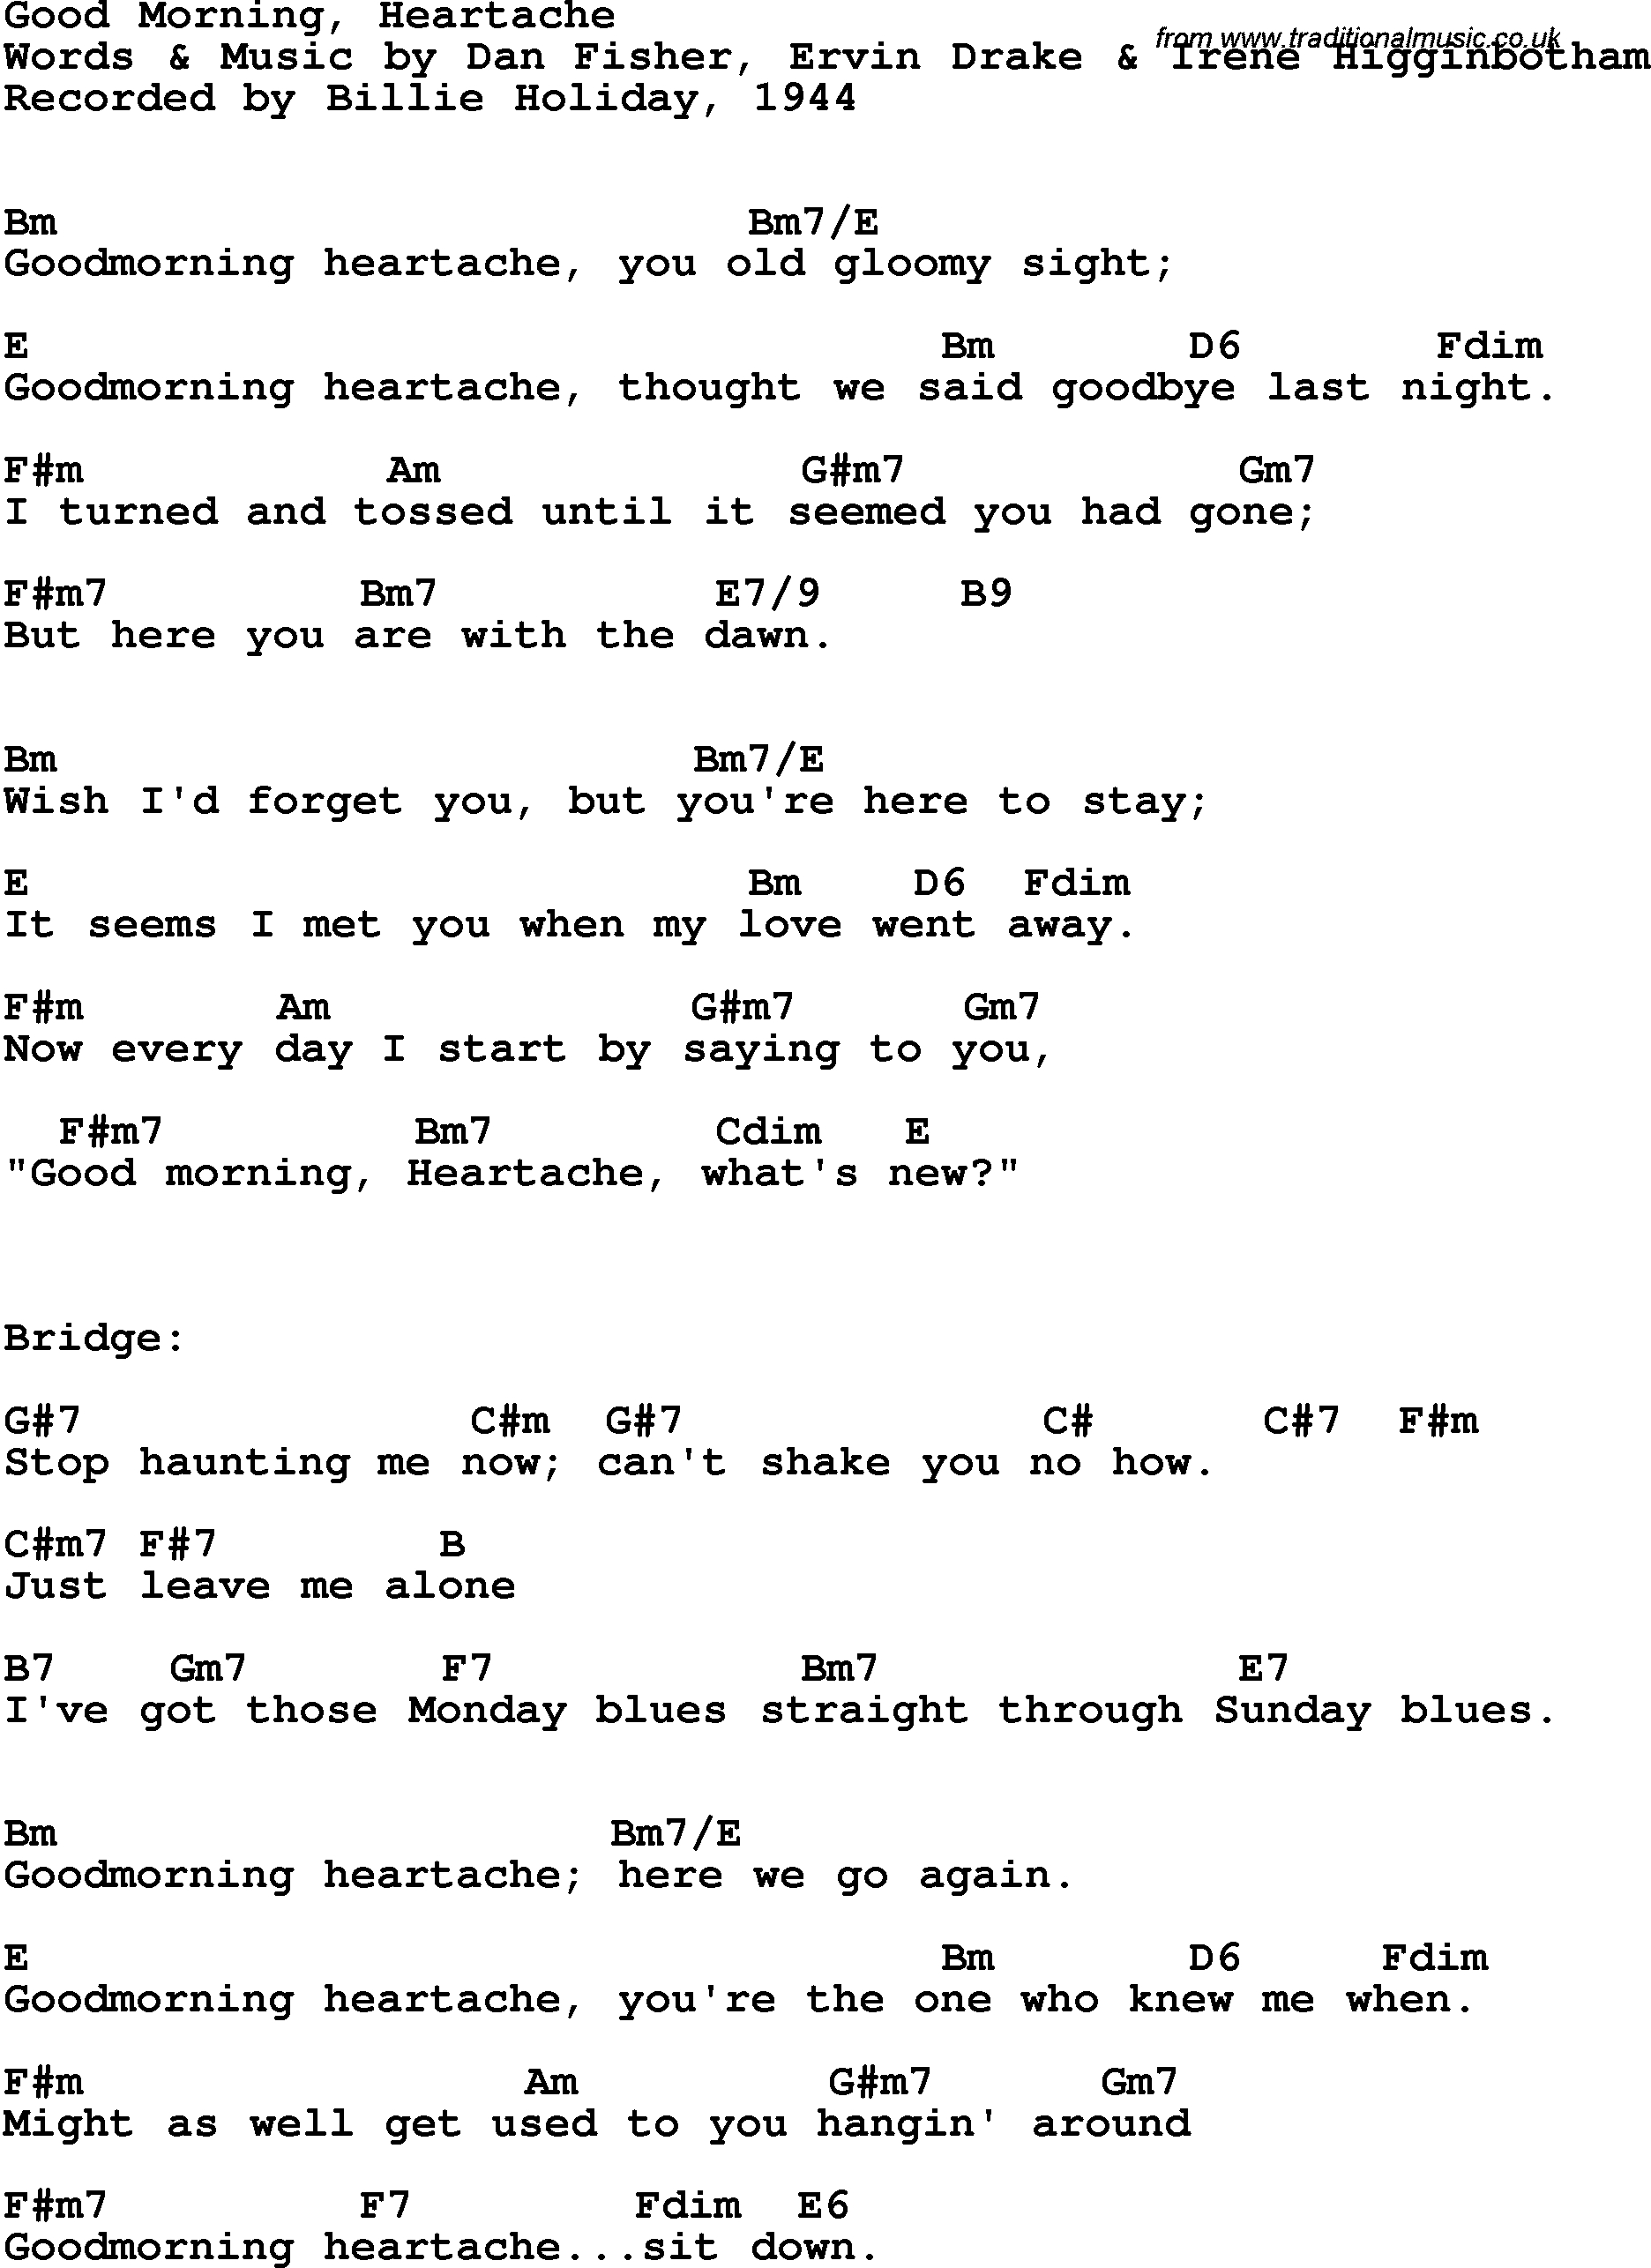 Sunday Morning Chords Song Lyrics With Guitar Chords For Good Morning Heartache Billie